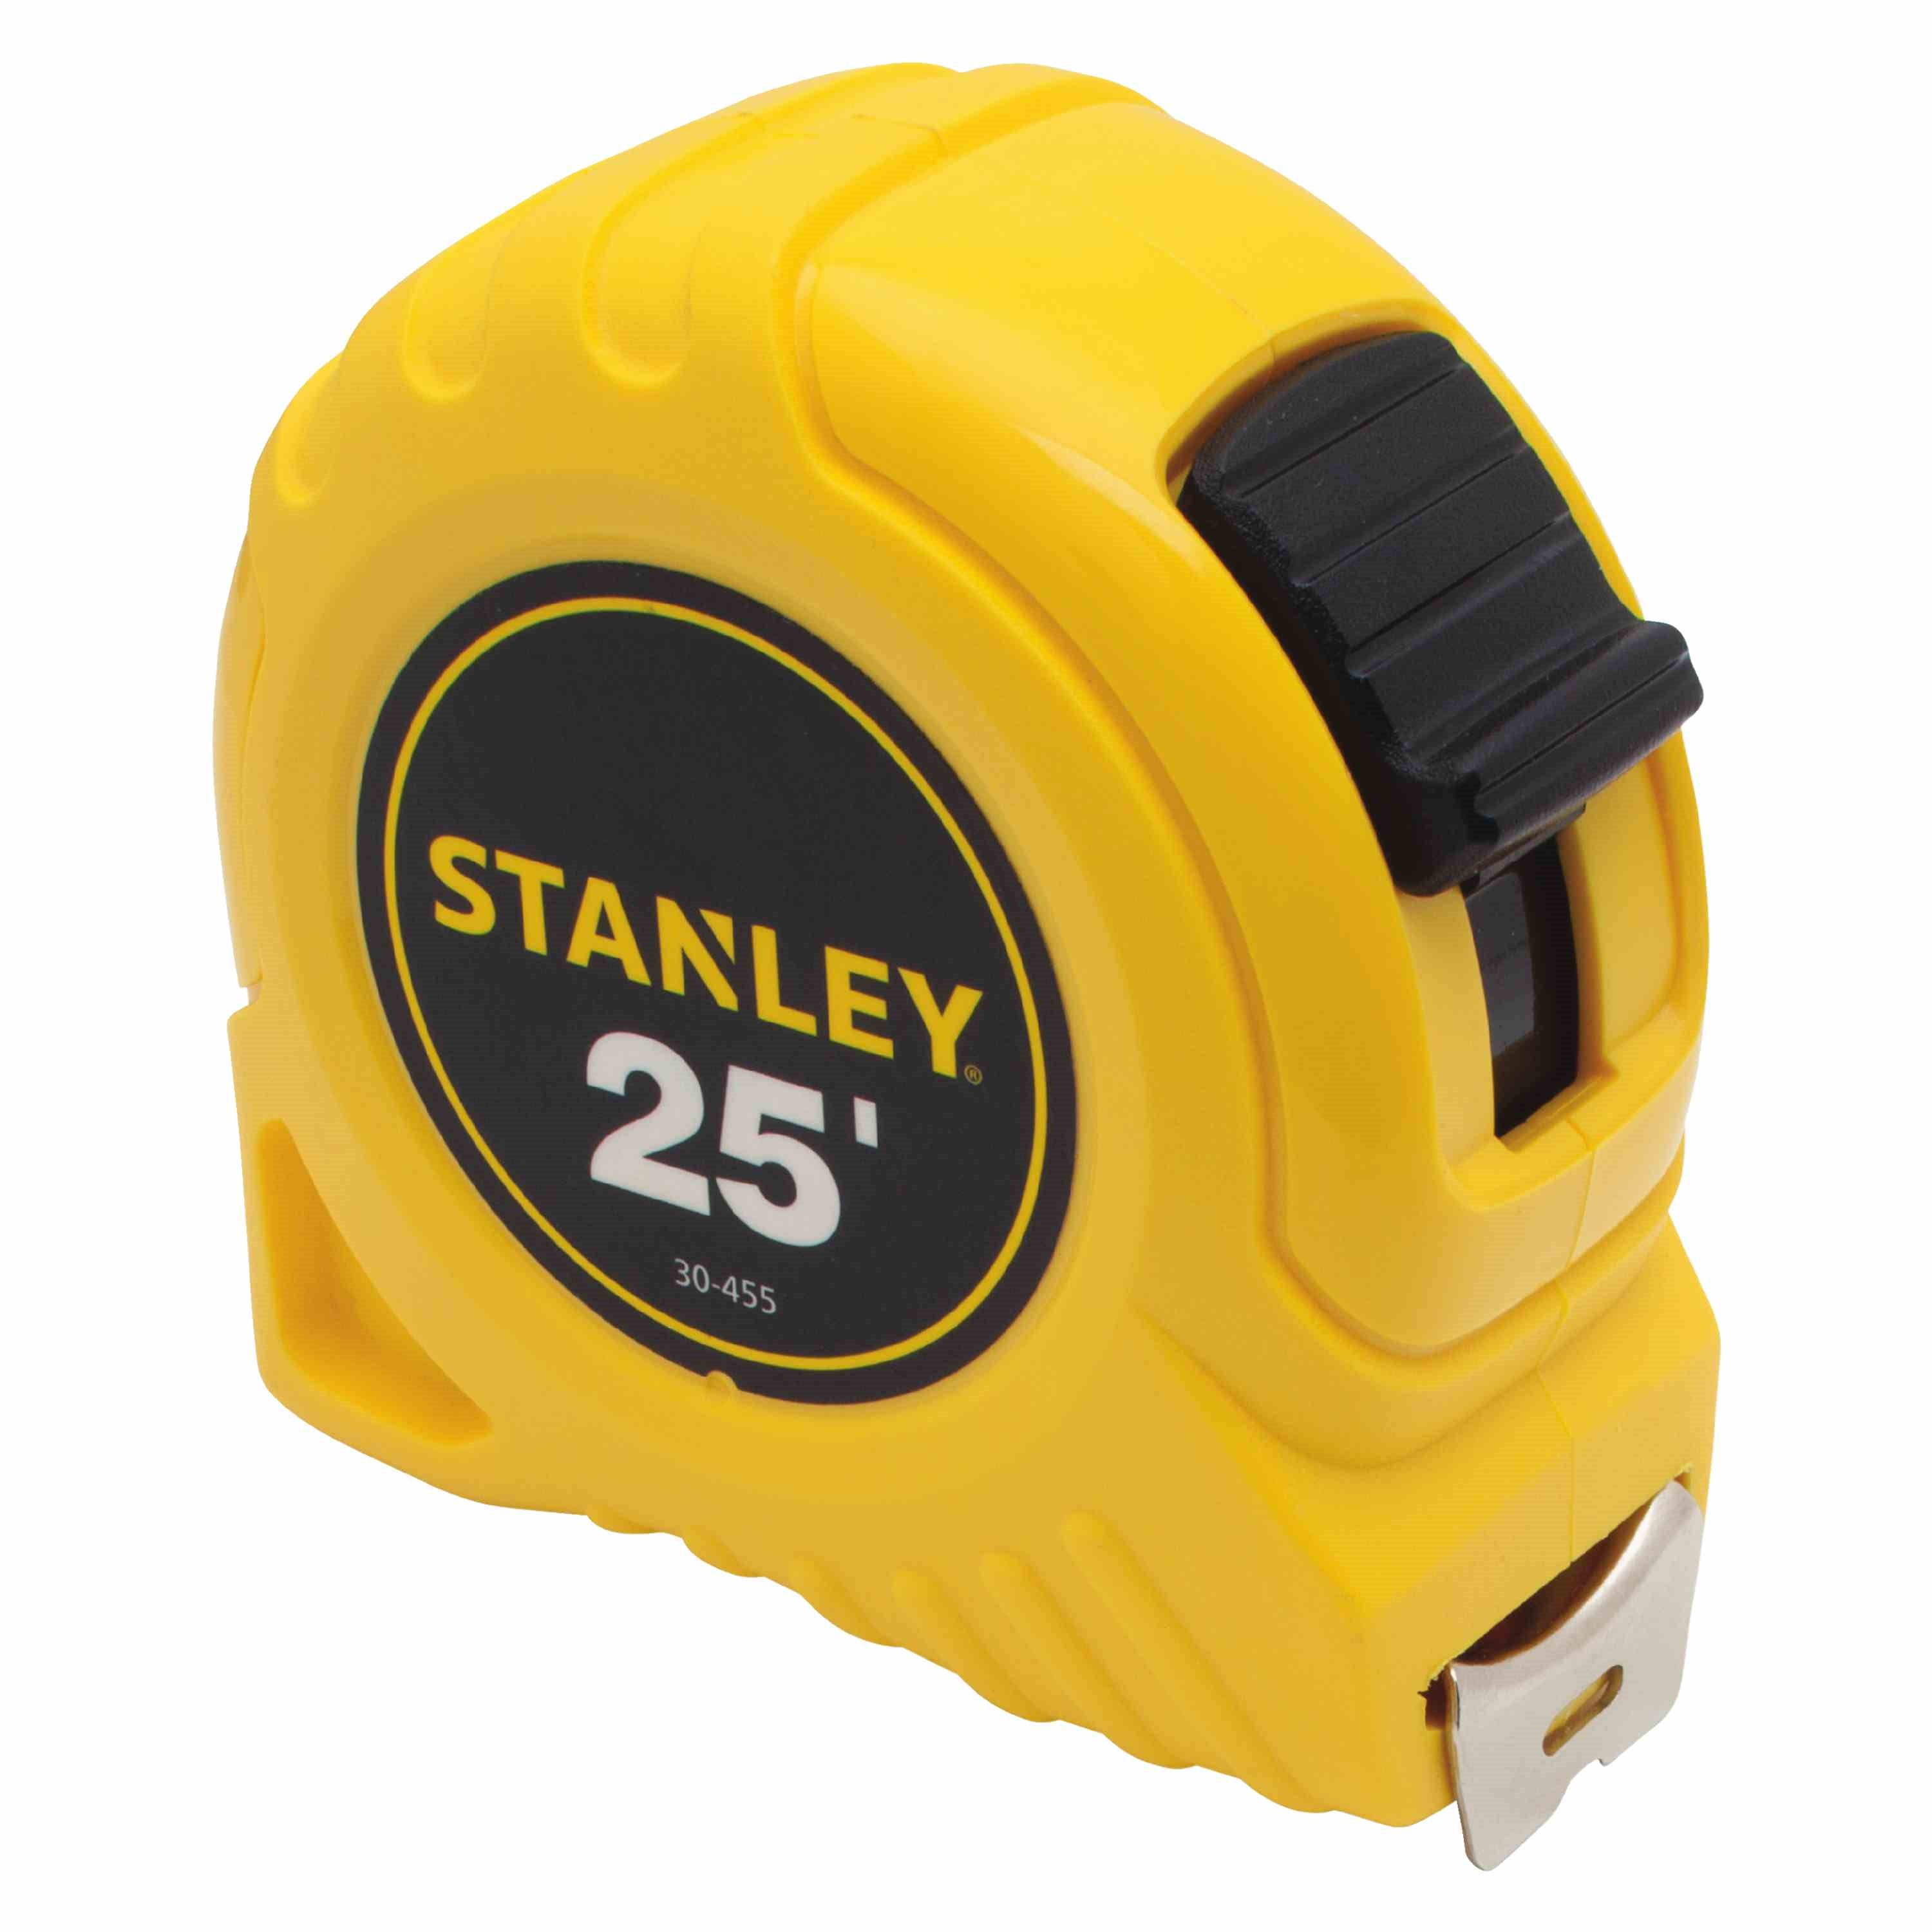 Stanley Tools - 25 ft Tape Measure - 30-455